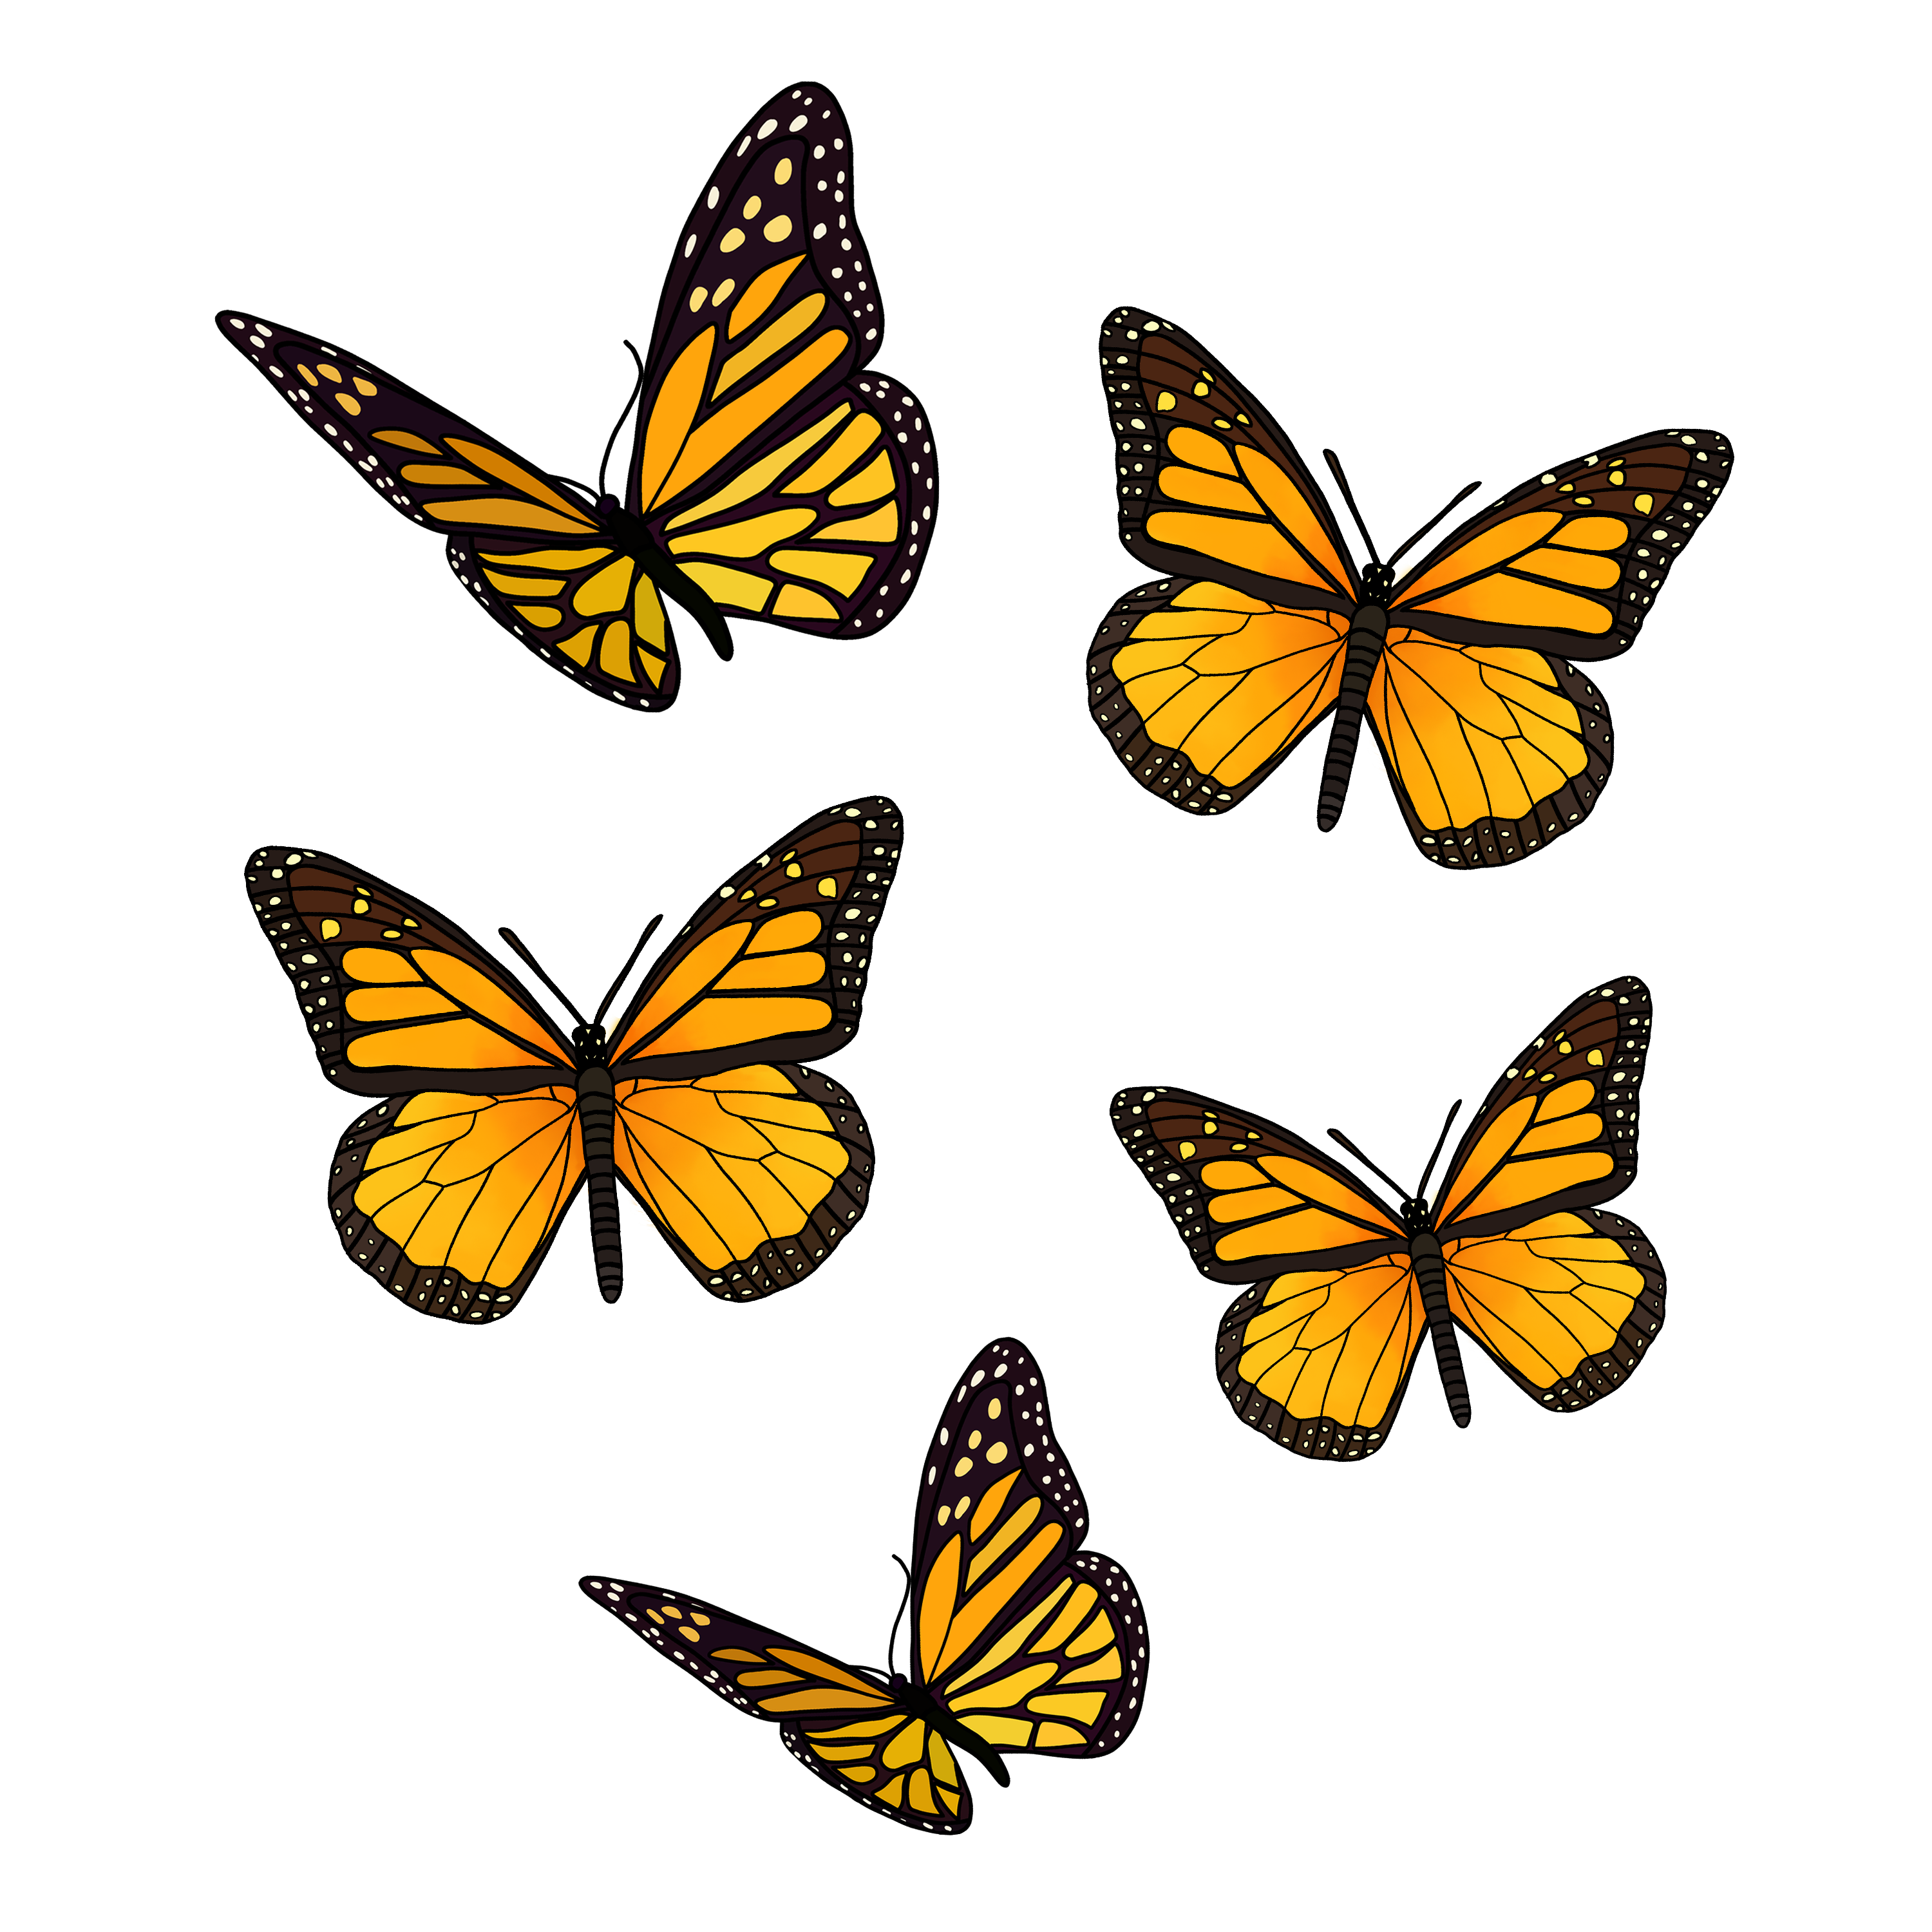 Yellow Butterfly Pack Sticker By Jadydesigns In 2021 Yellow Butterfly Butterfly Wallpaper Iphone Butterfly Background